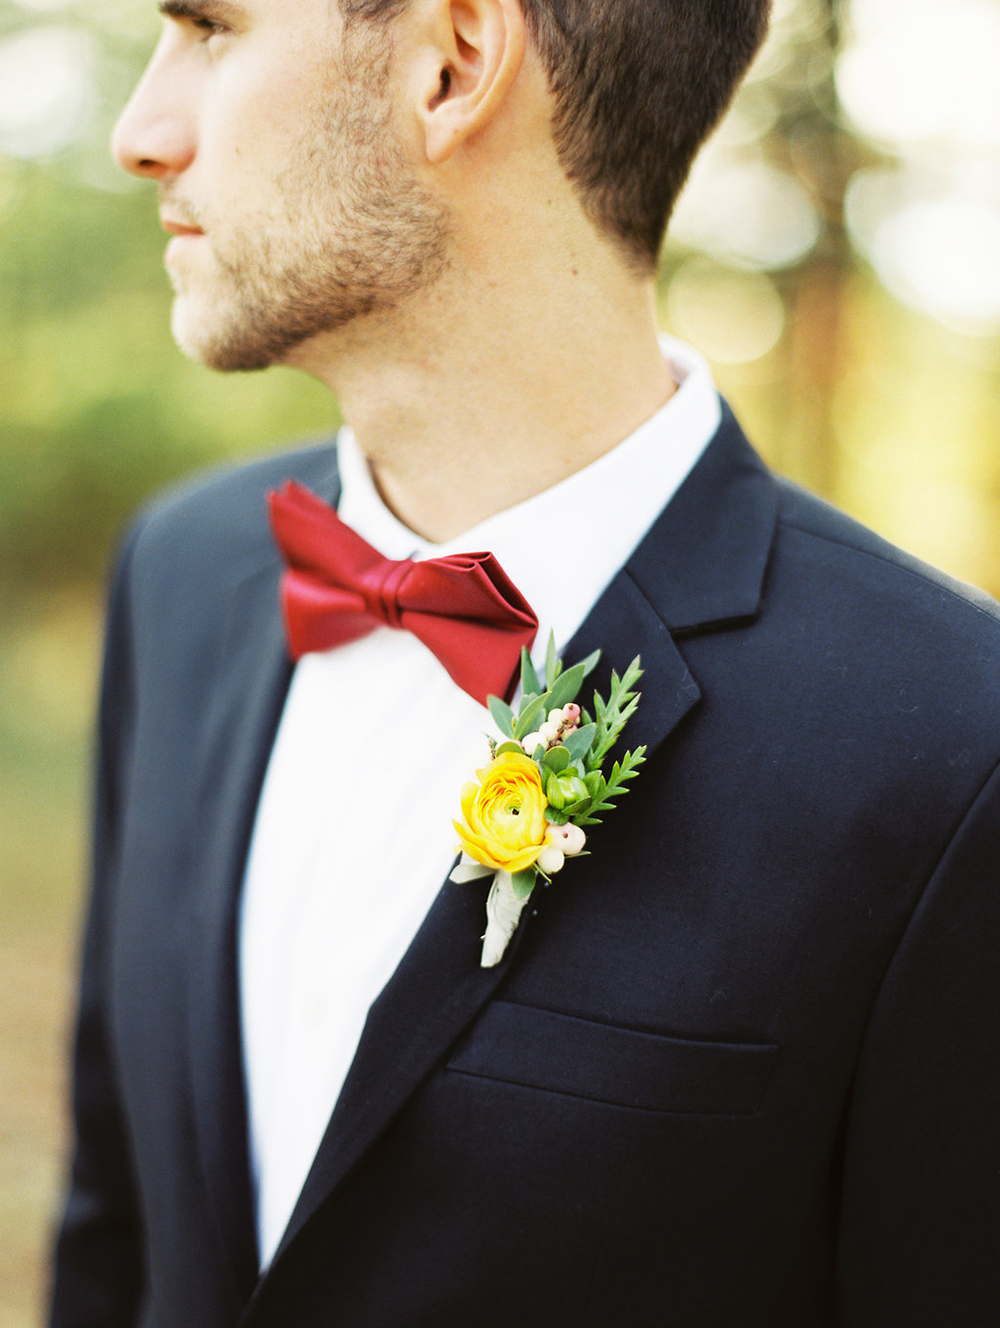 yellow and green boutonnieres - photo by Evelyn Barkey Photography http://ruffledblog.com/romantic-elopement-inspiration-with-rich-colors